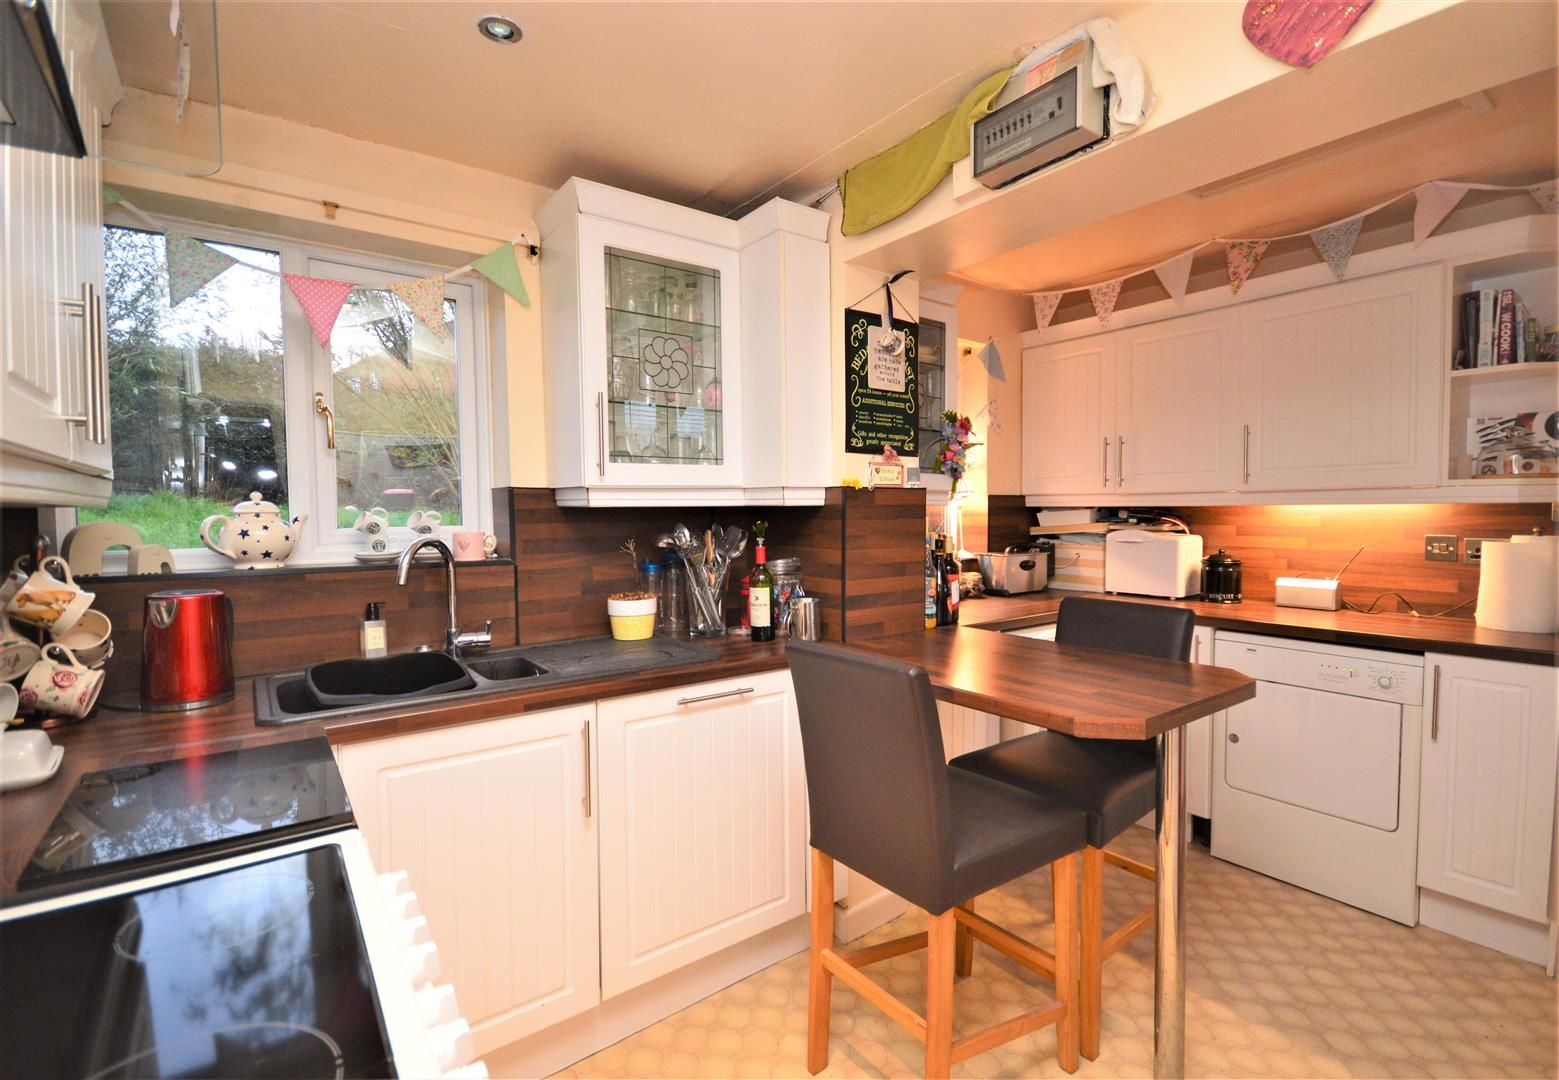 3 bed semi-detached for sale in Much Birch  - Property Image 5